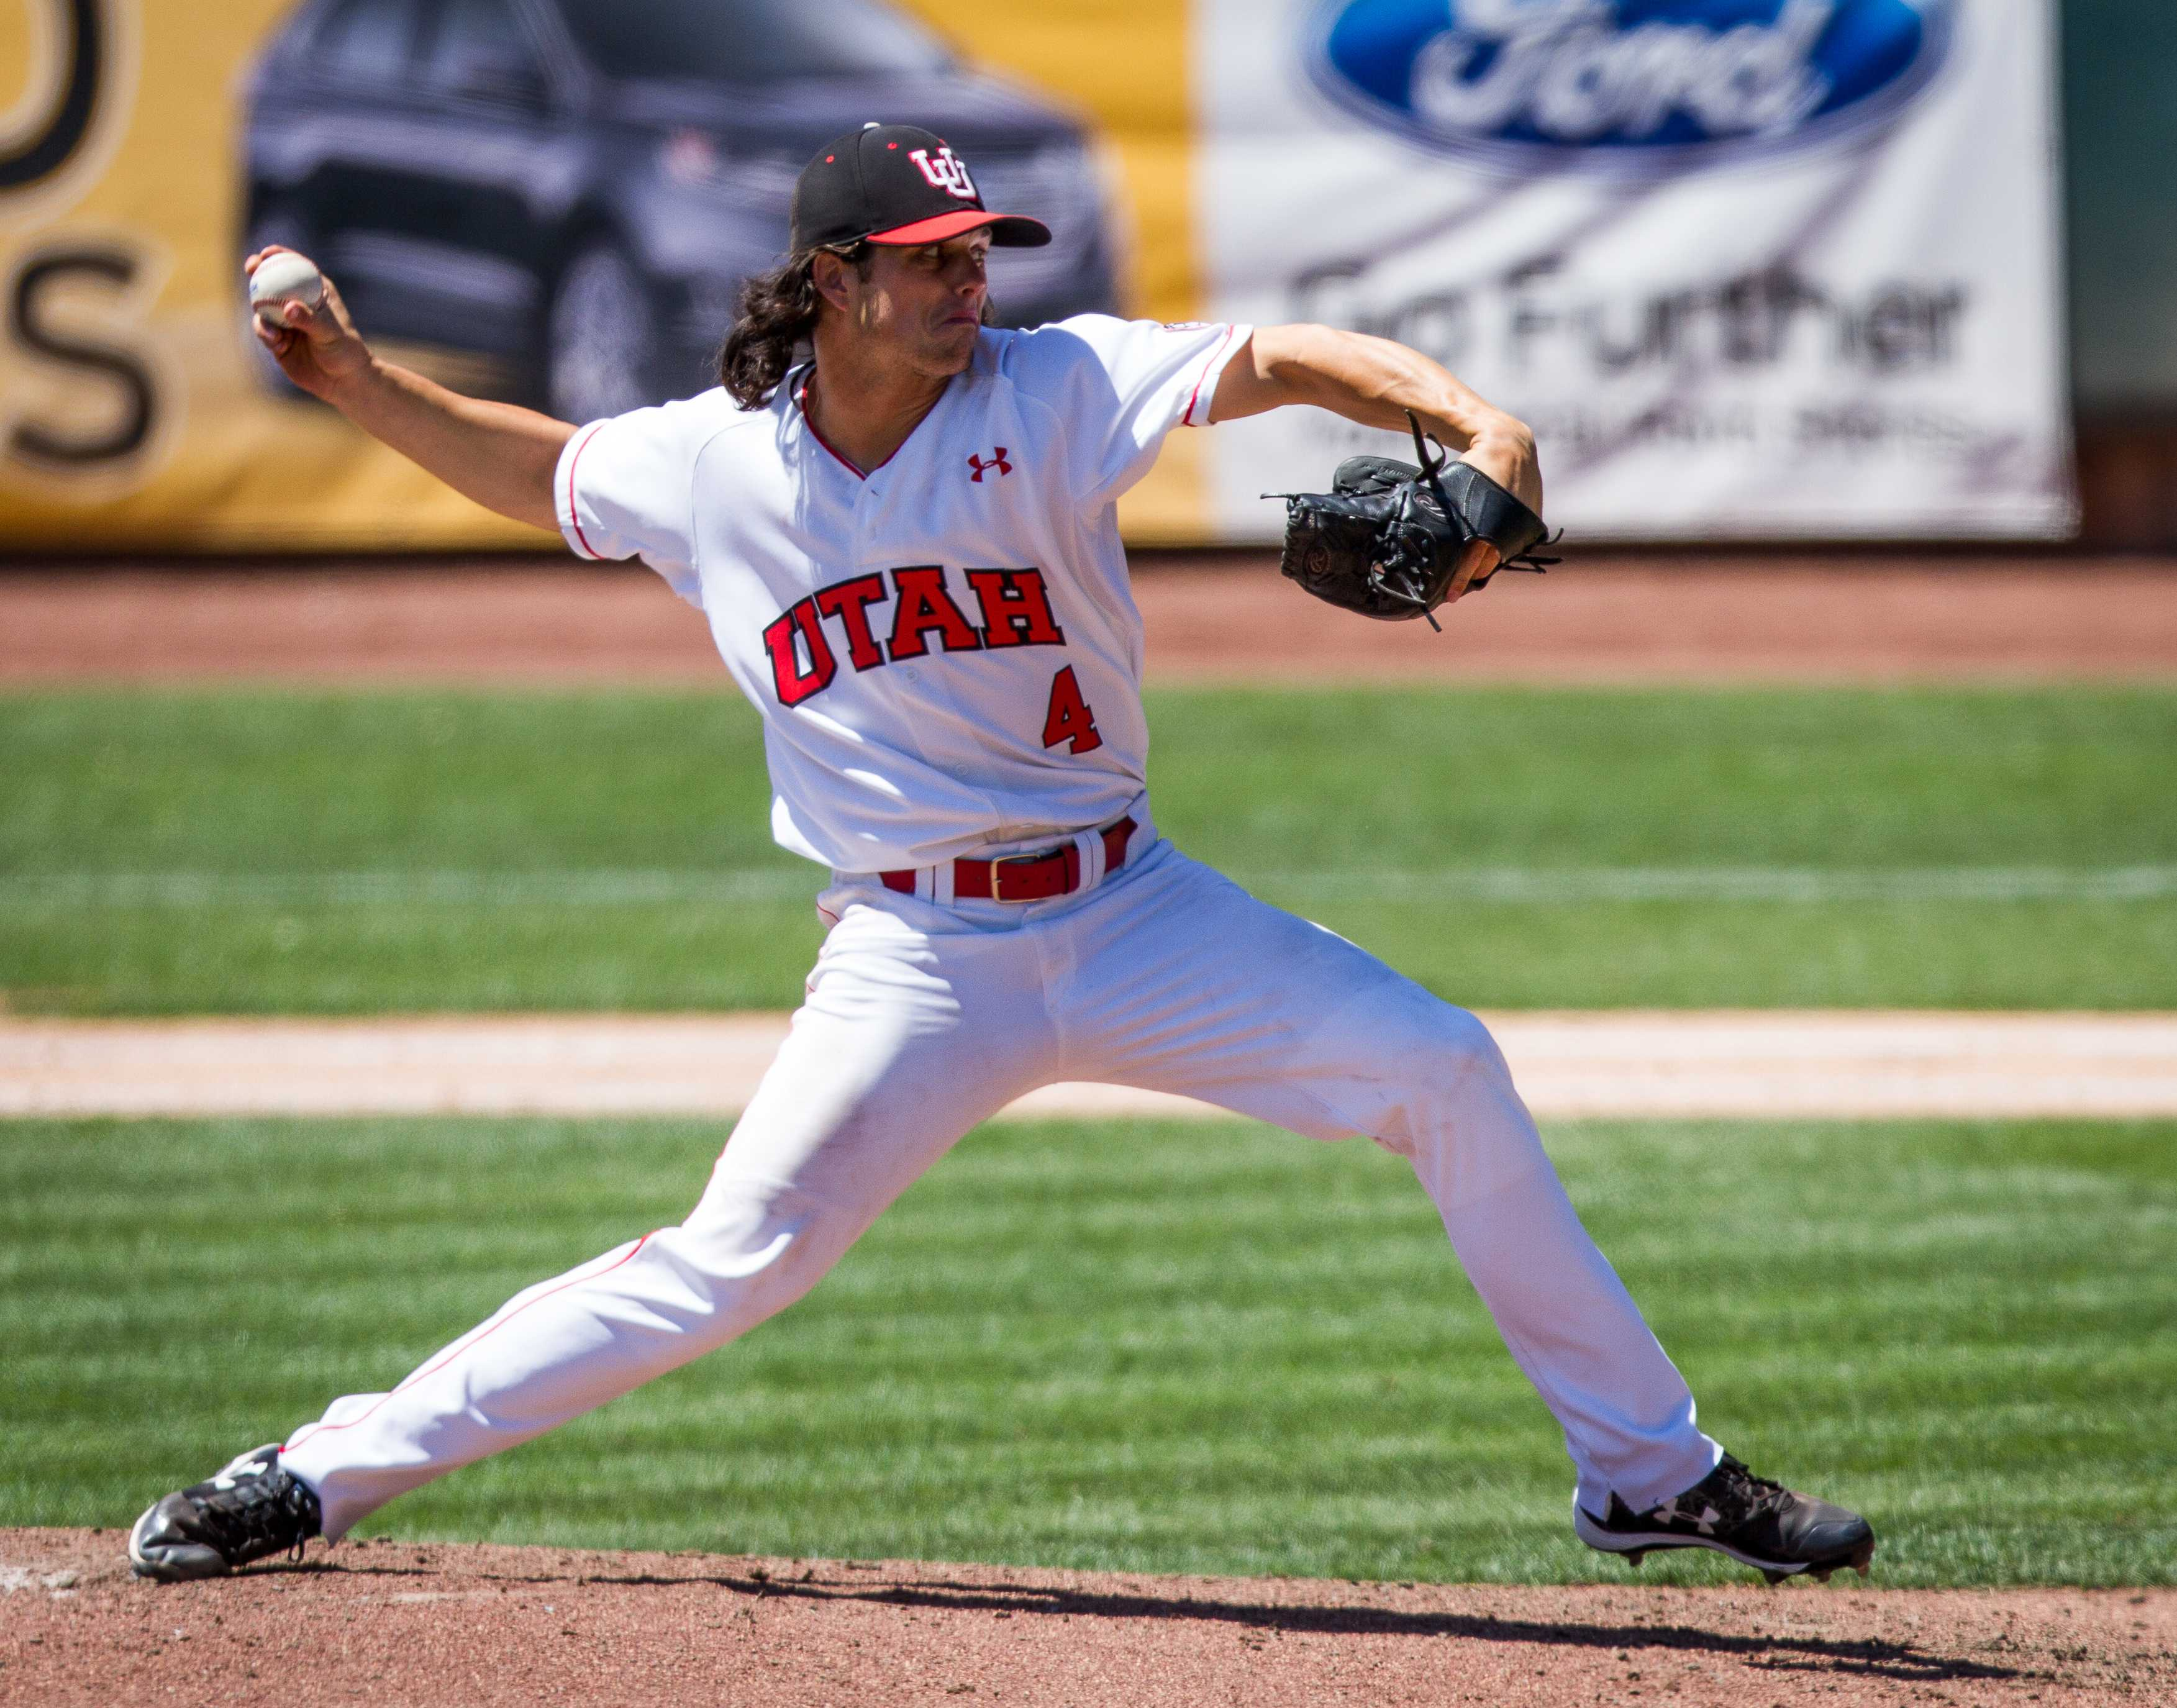 University of Utah Baseball's sophomore right-handed starting pitcher Riley Ottesen (4) in an PAC 12 Game vs. The Arizona State Sun Devils at The Salt Lake Bee's Stadium, Salt Lake City, UT on Saturday, May 27, 2017  (Photo by Adam Fondren | Daily Utah Chronicle)